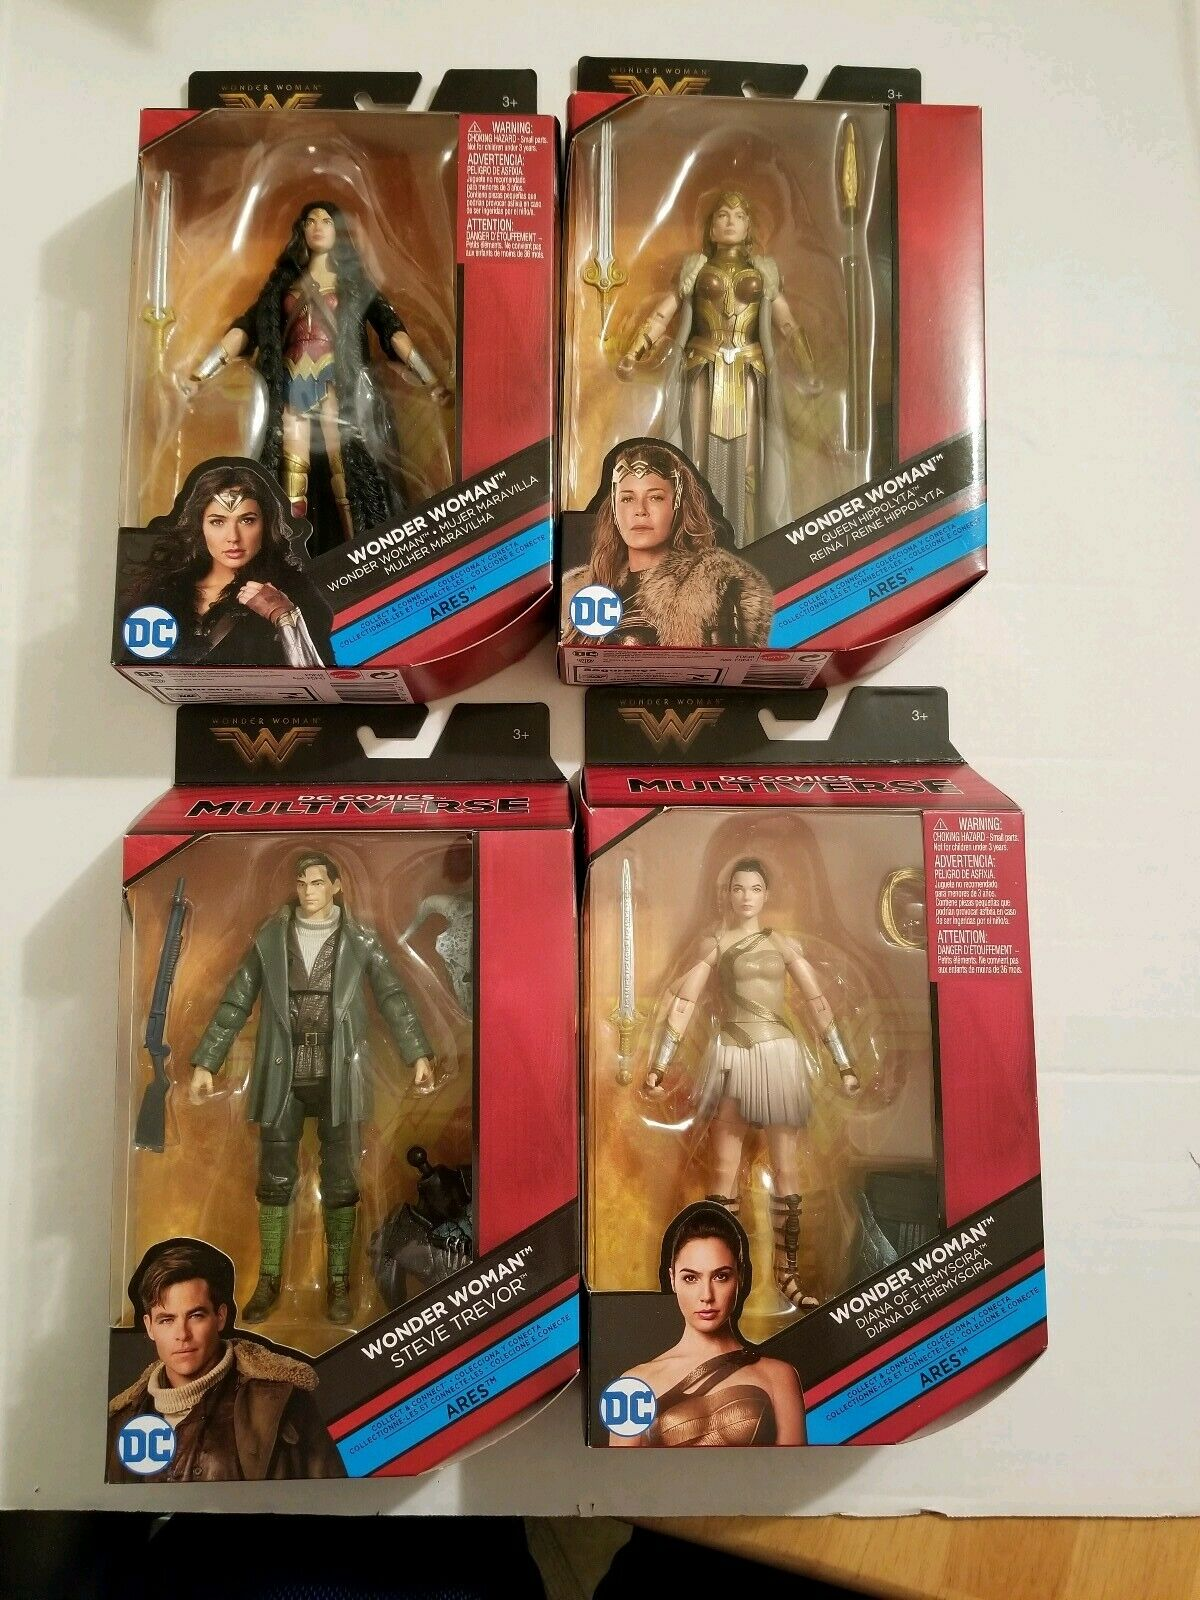 DC Multiverse Mujer Maravilla Aries CNC Steve Trevor Queen Hippolyta Diana